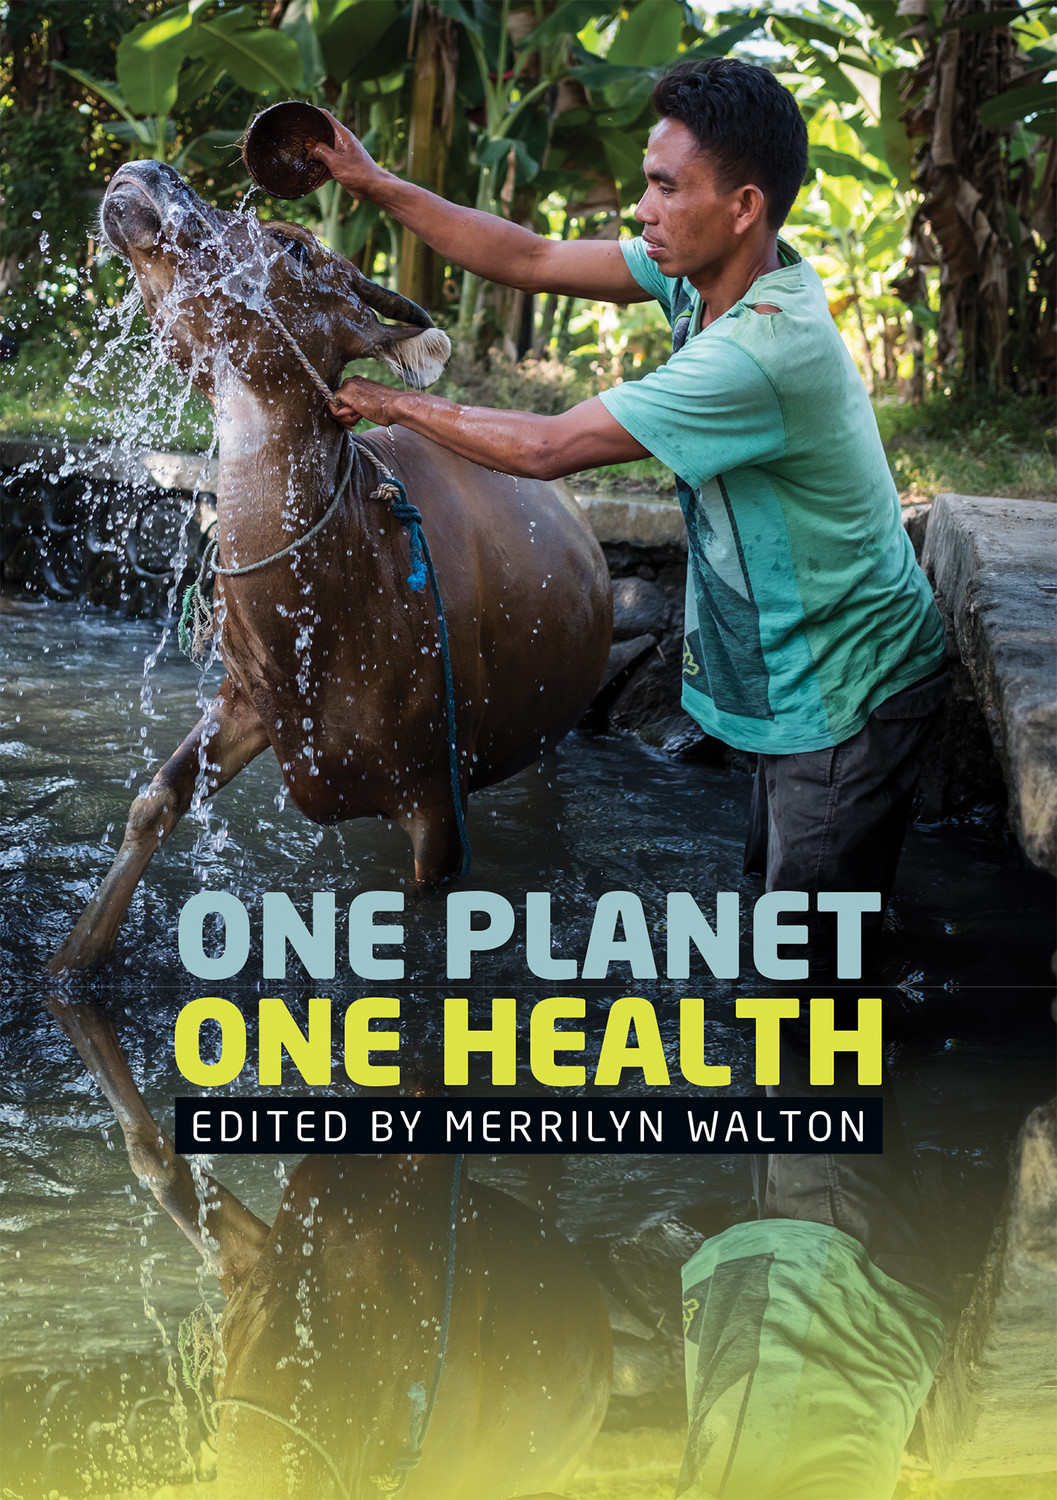 One Planet, One Health